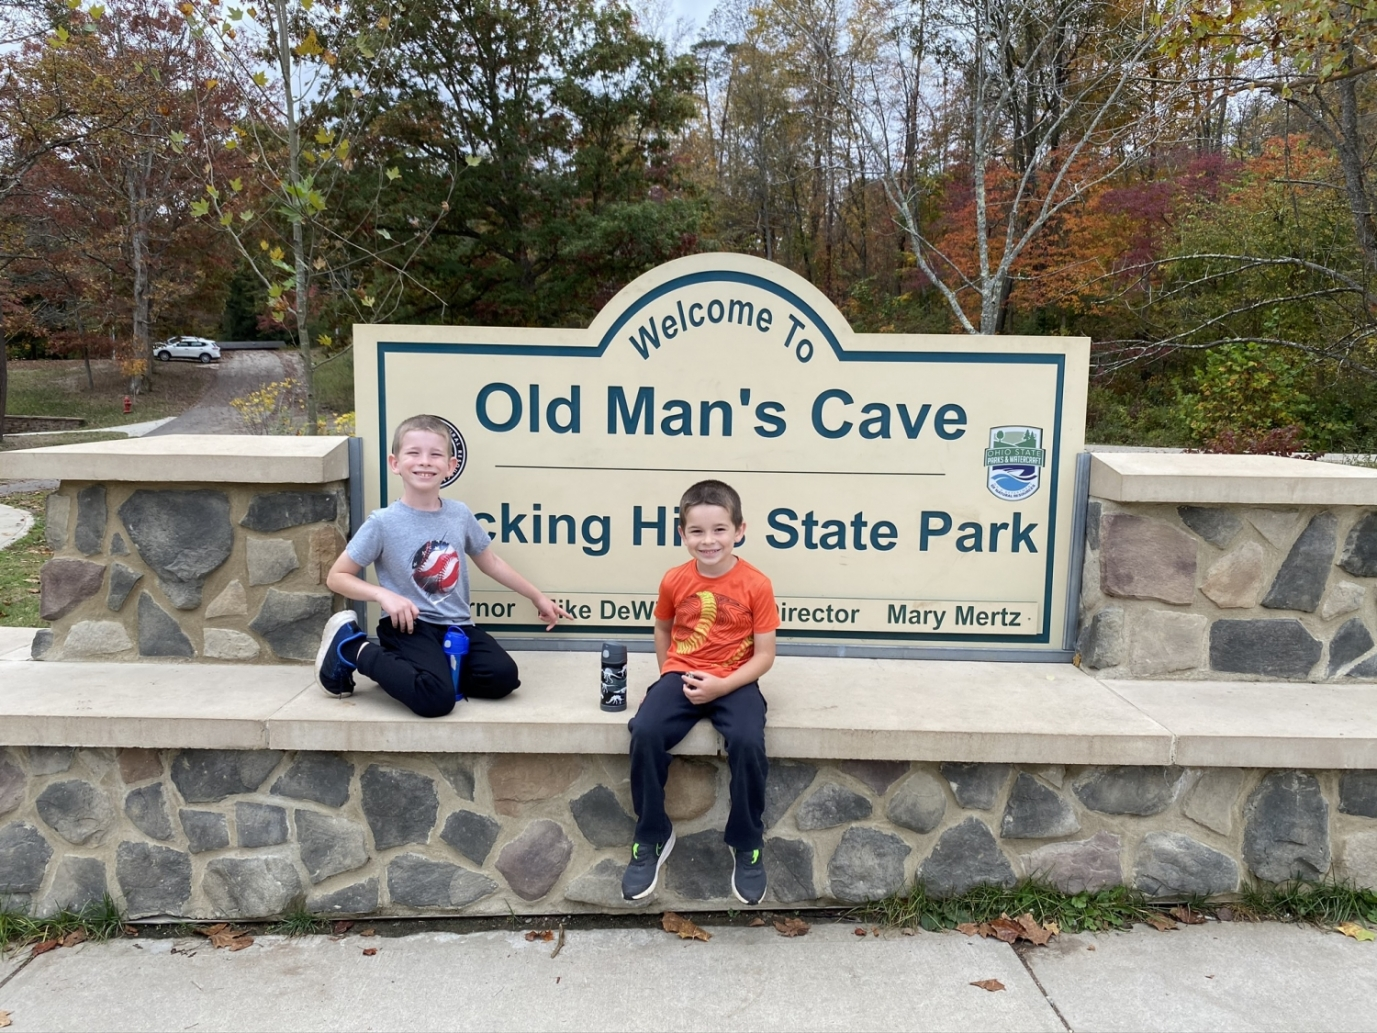 two boys in front of the Old Man's Cave sign at Hocking Hills